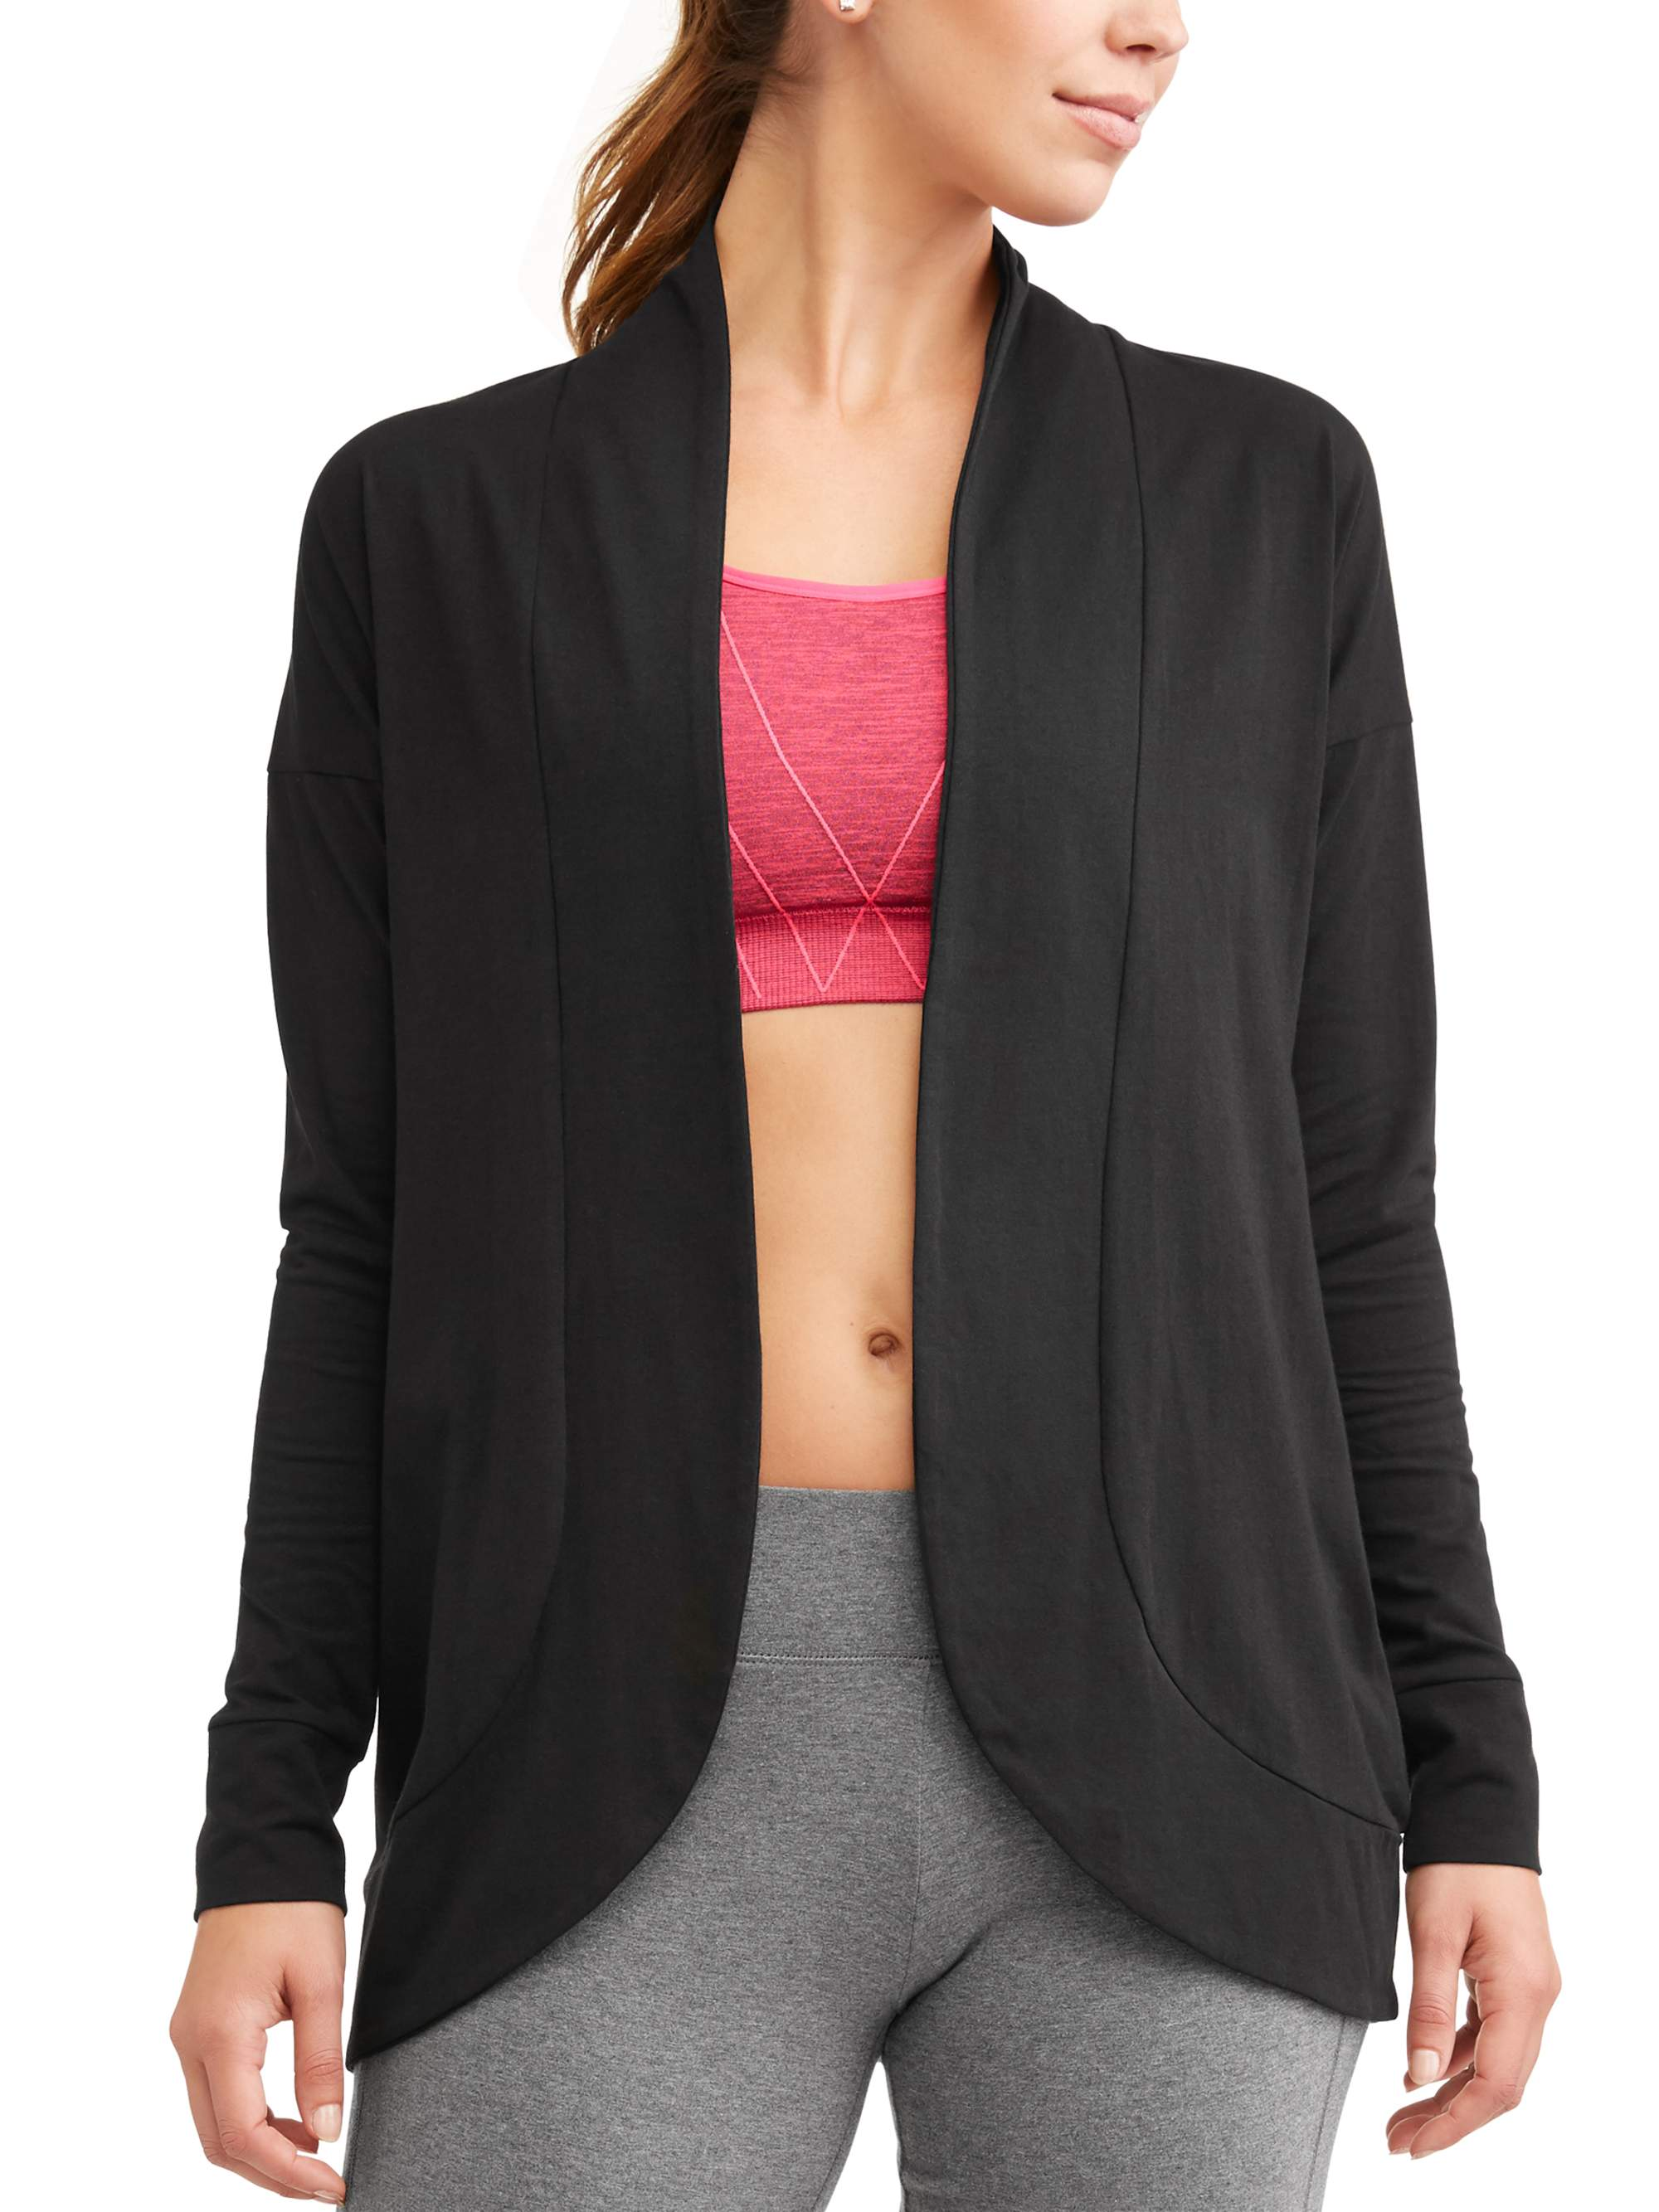 Women's Active Super Soft After Yoga Cocoon Cardigan